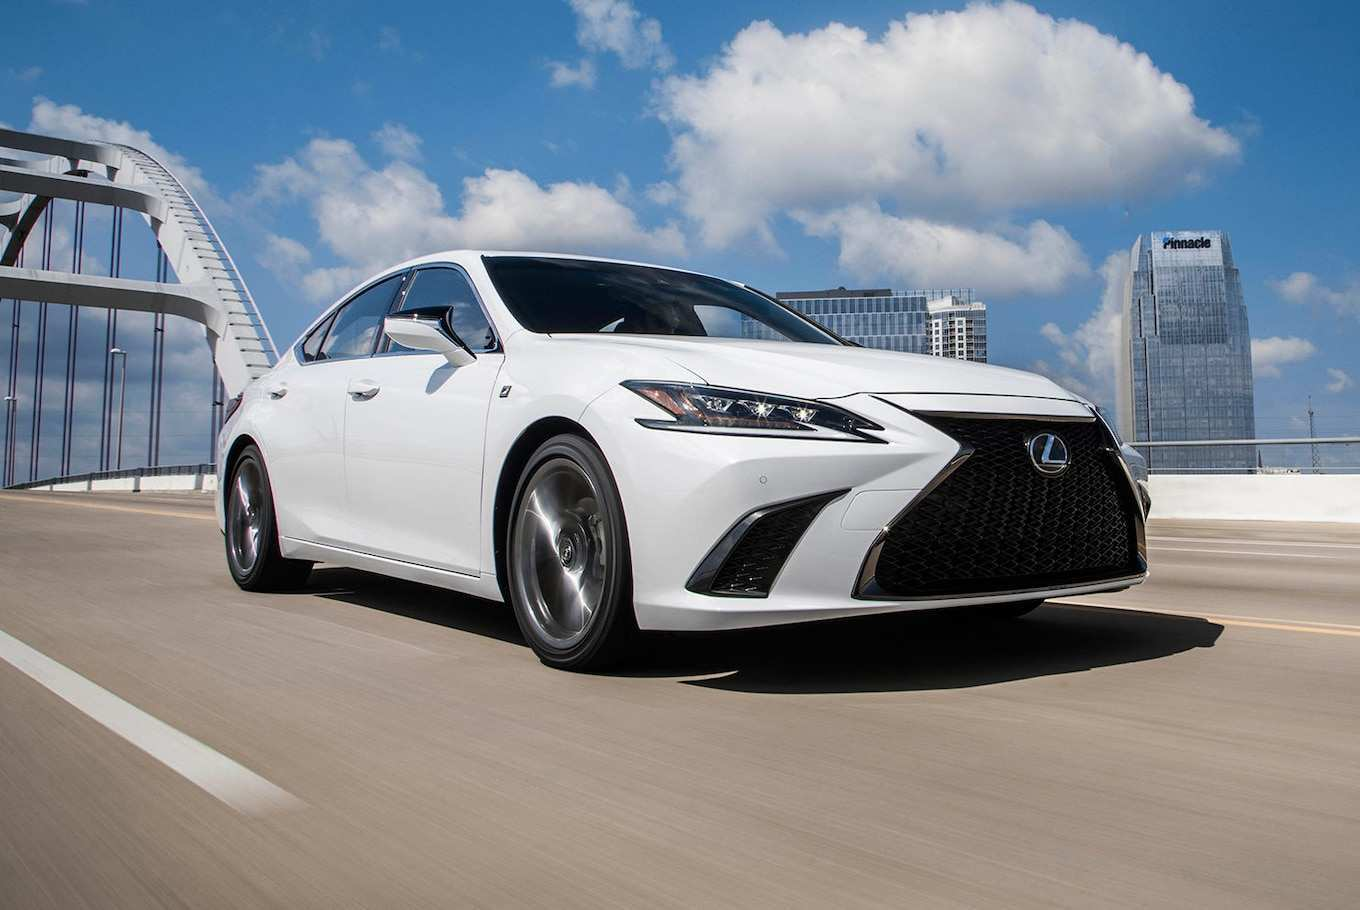 20 Best Lexus Es 2019 Vs 2018 Engine